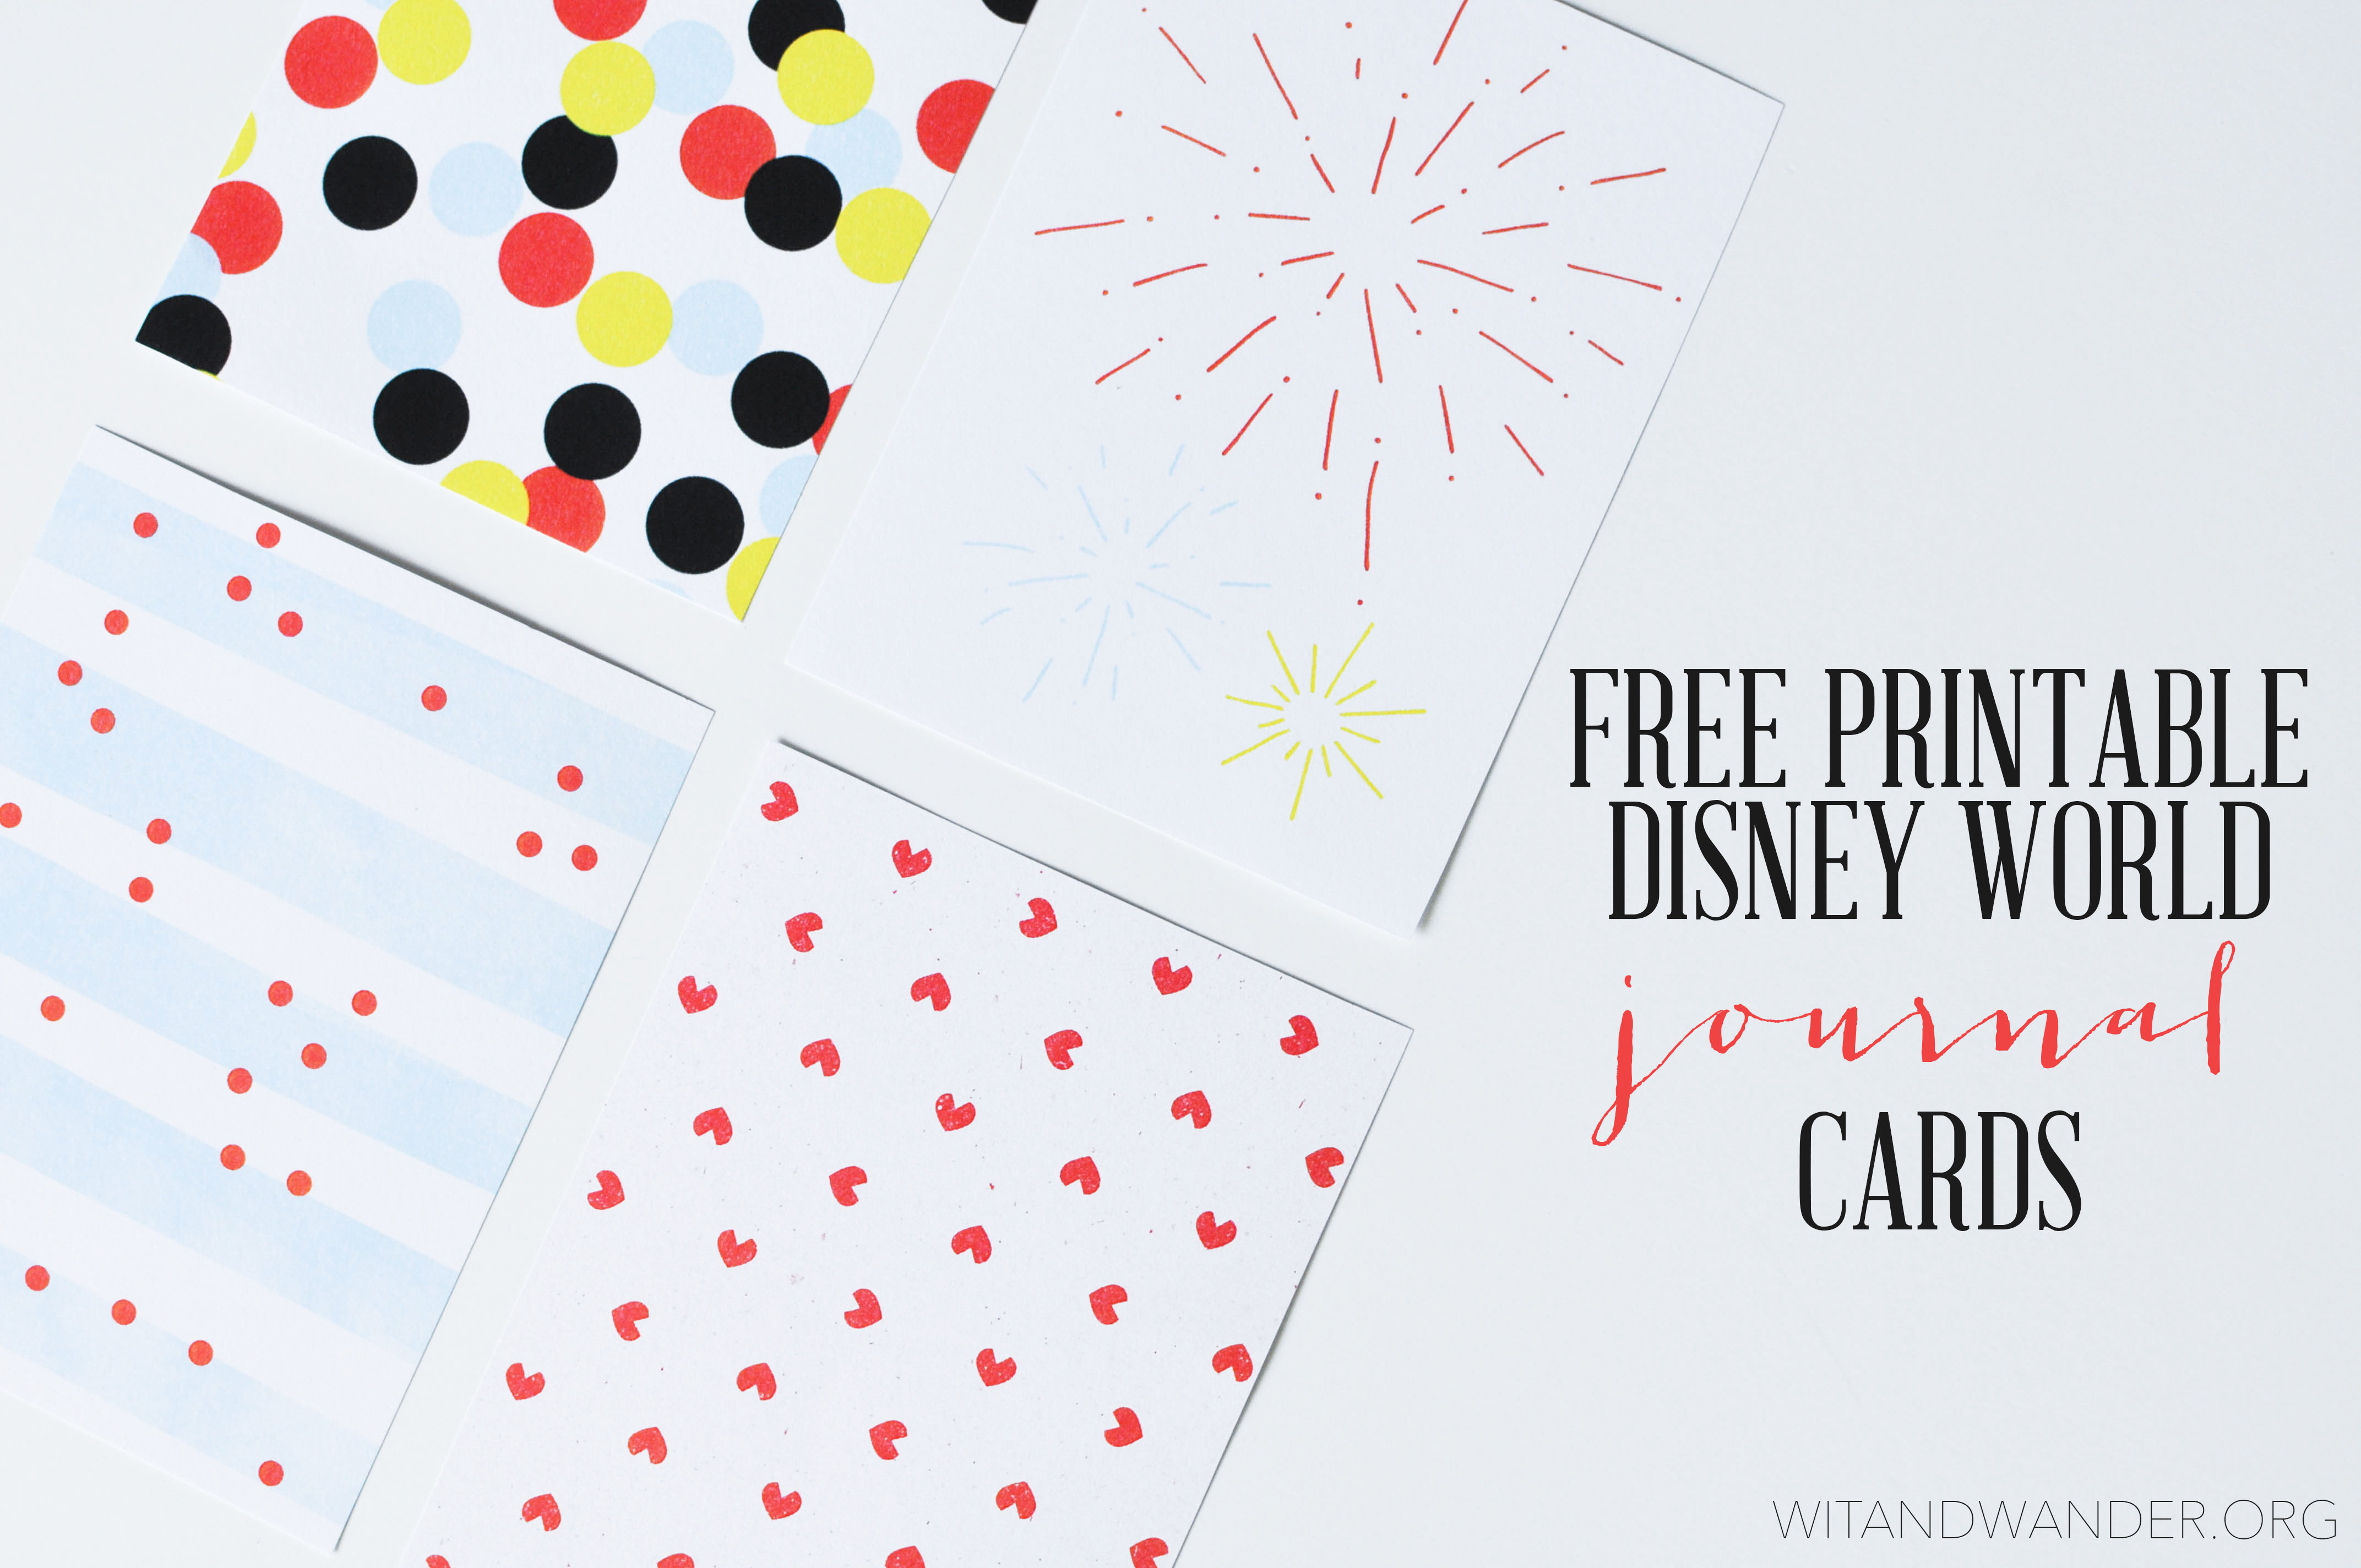 photo about Free Printable Journaling Cards titled Disney International